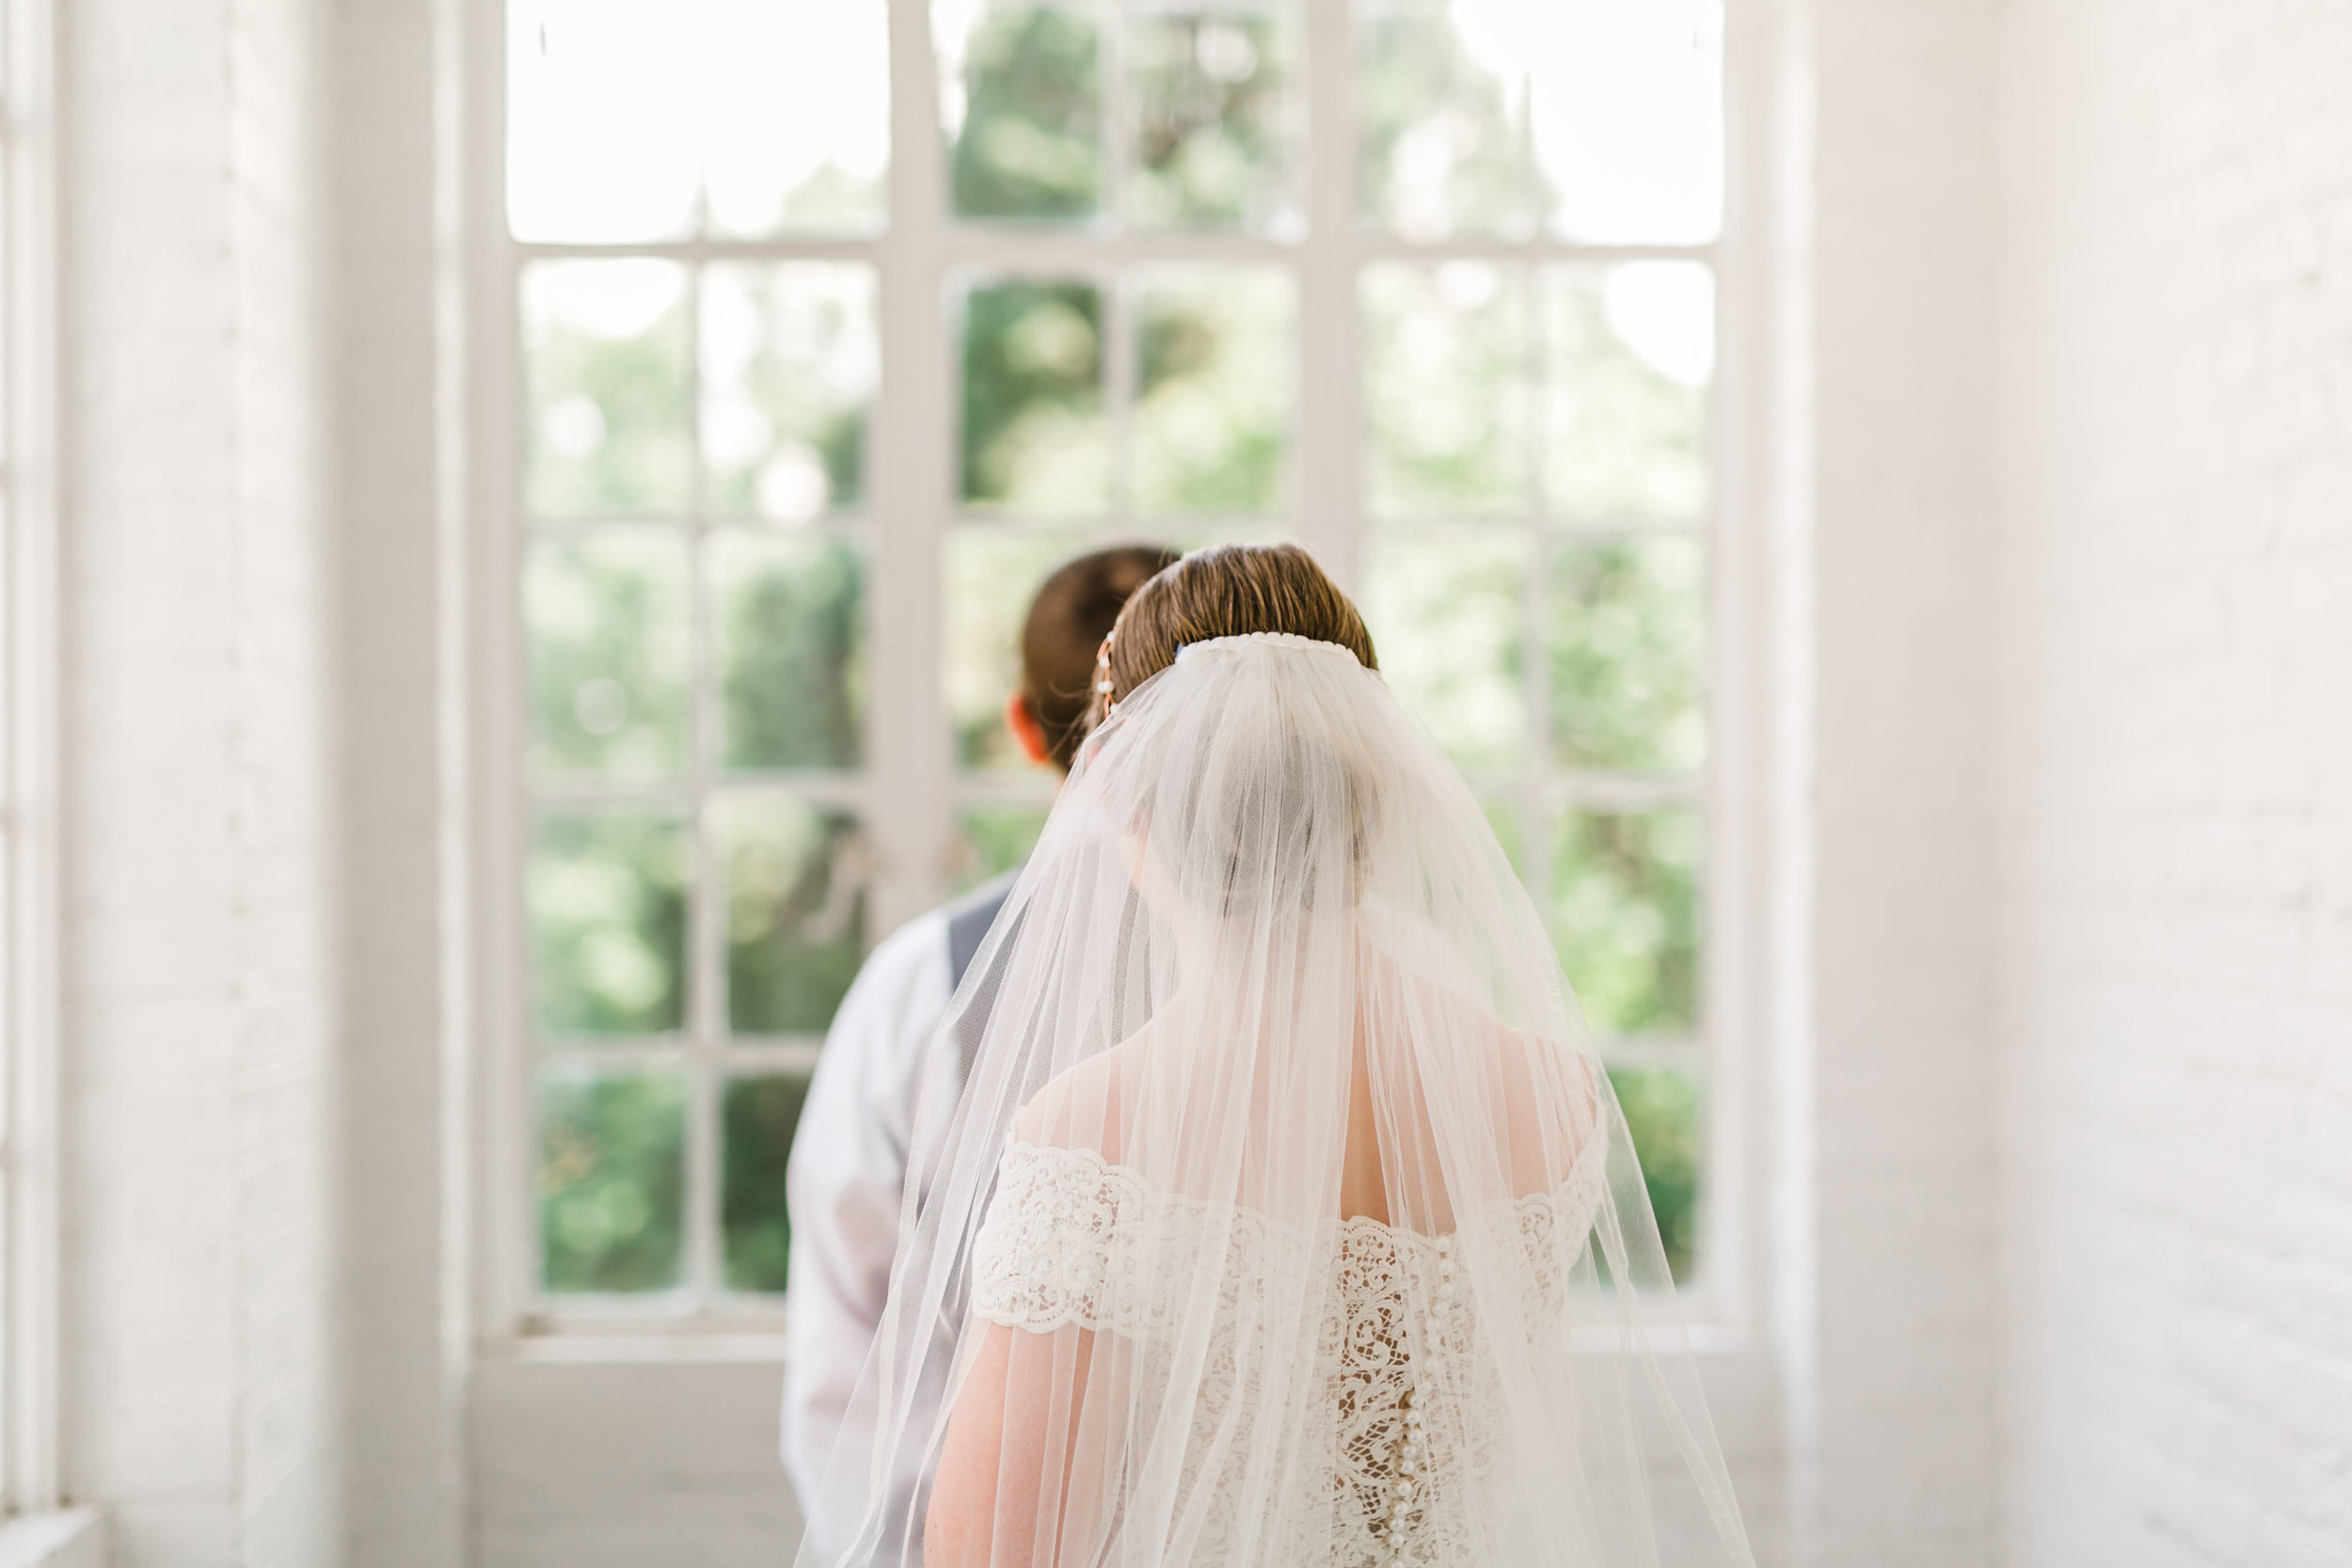 veil from behind